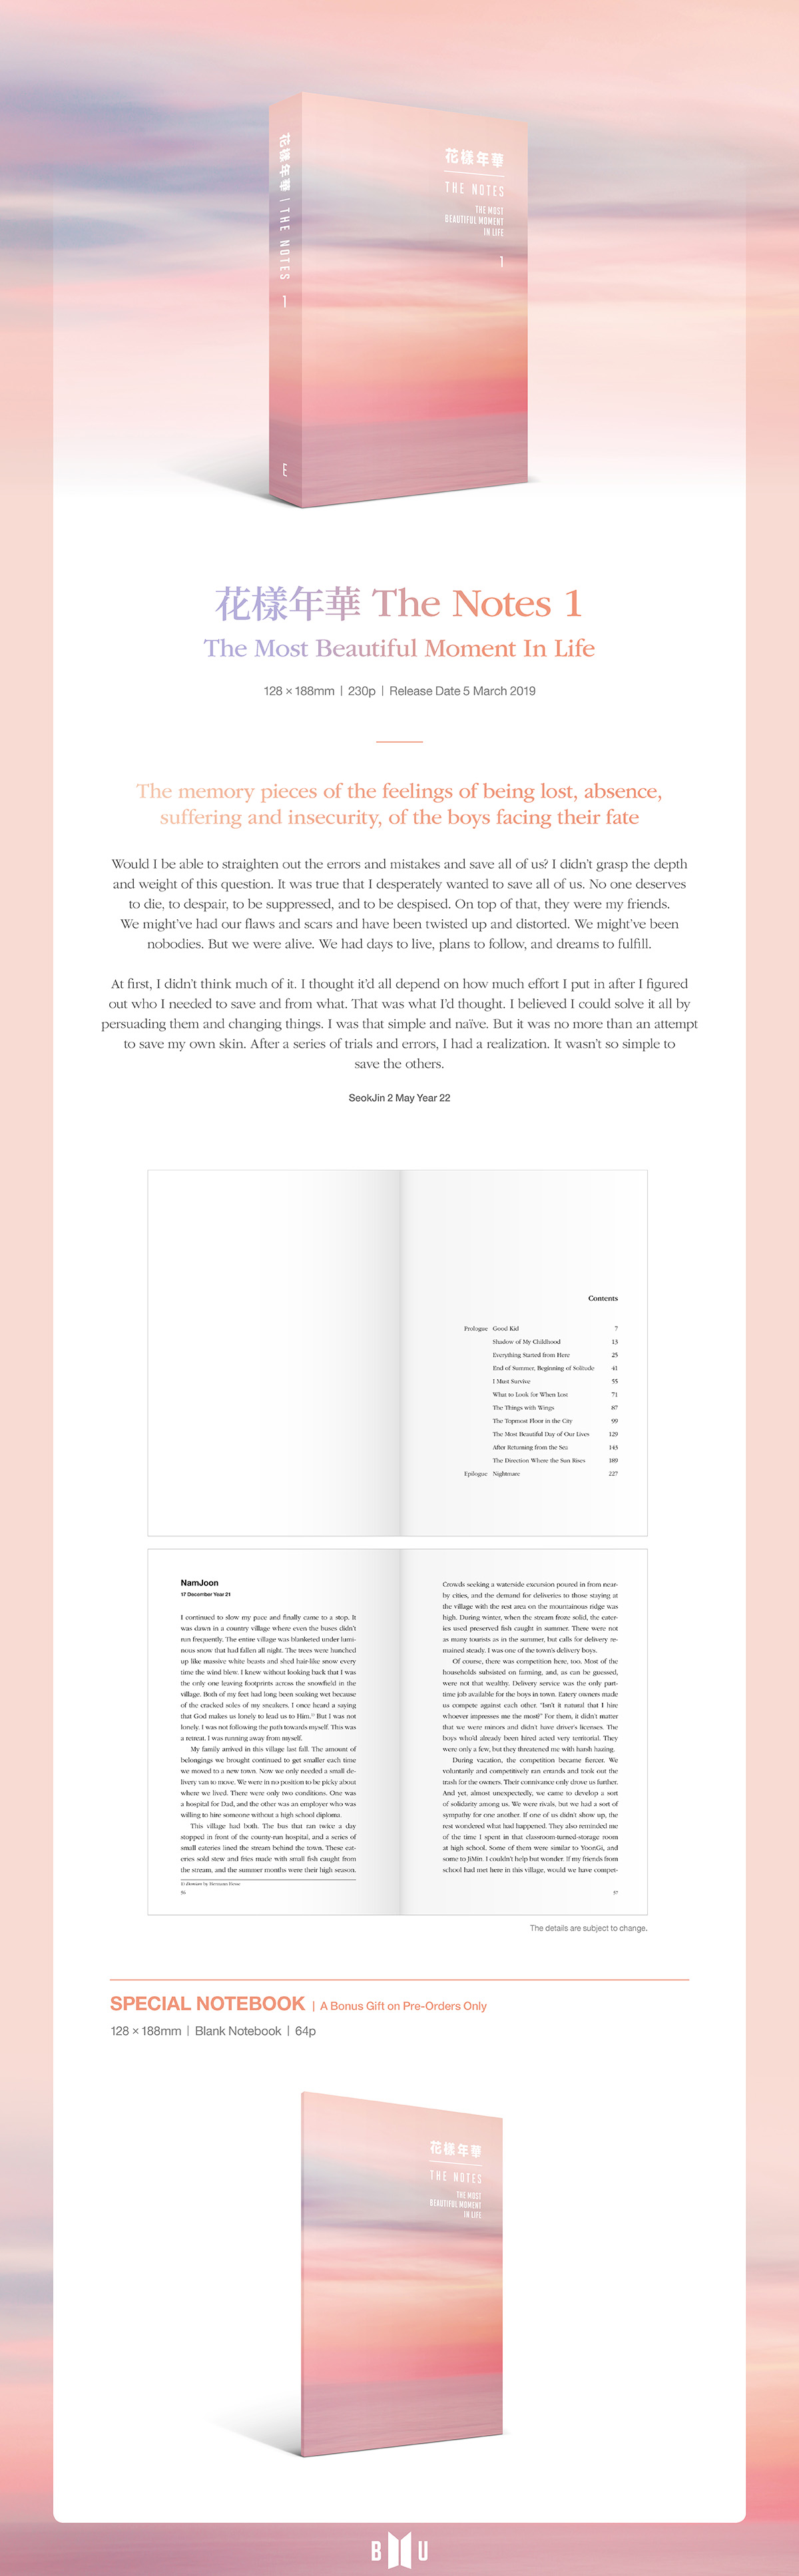 [2nd Press] BTS Official Goods - 花樣年華 THE NOTES 1 (English)